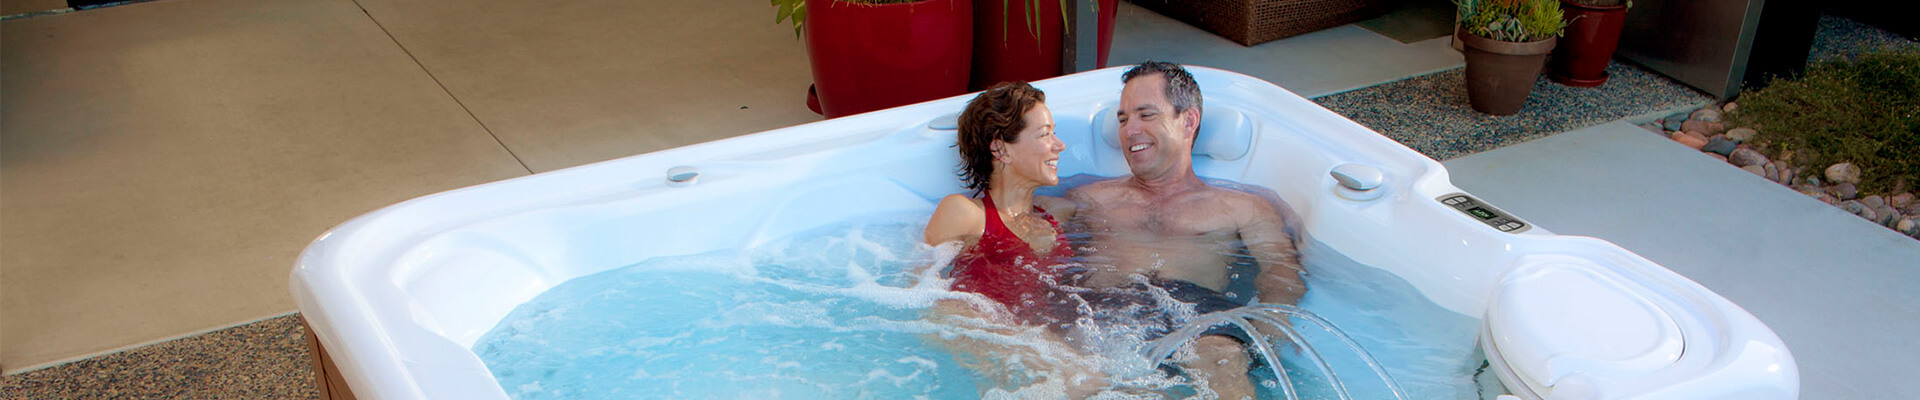 Hot Tub Buying Secret: Consider the Noise Factor